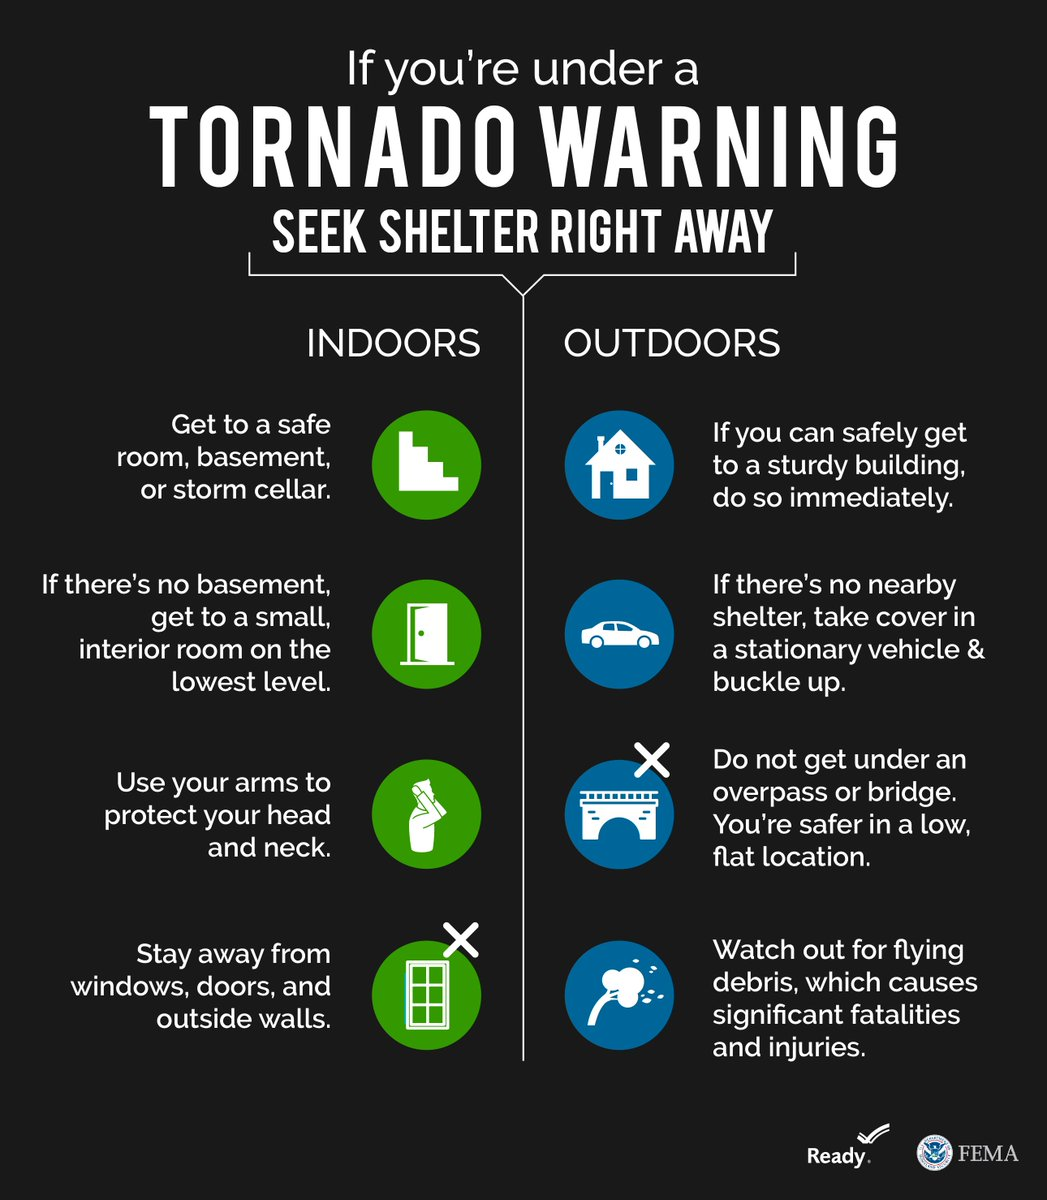 If you're under a #tornado warning, take shelter immediately:  -Go to a safe room, basement, or storm cellar. -If you are in a building with no basement, then get to a small interior room on the lowest level. -Stay away from windows, doors, and outside walls.